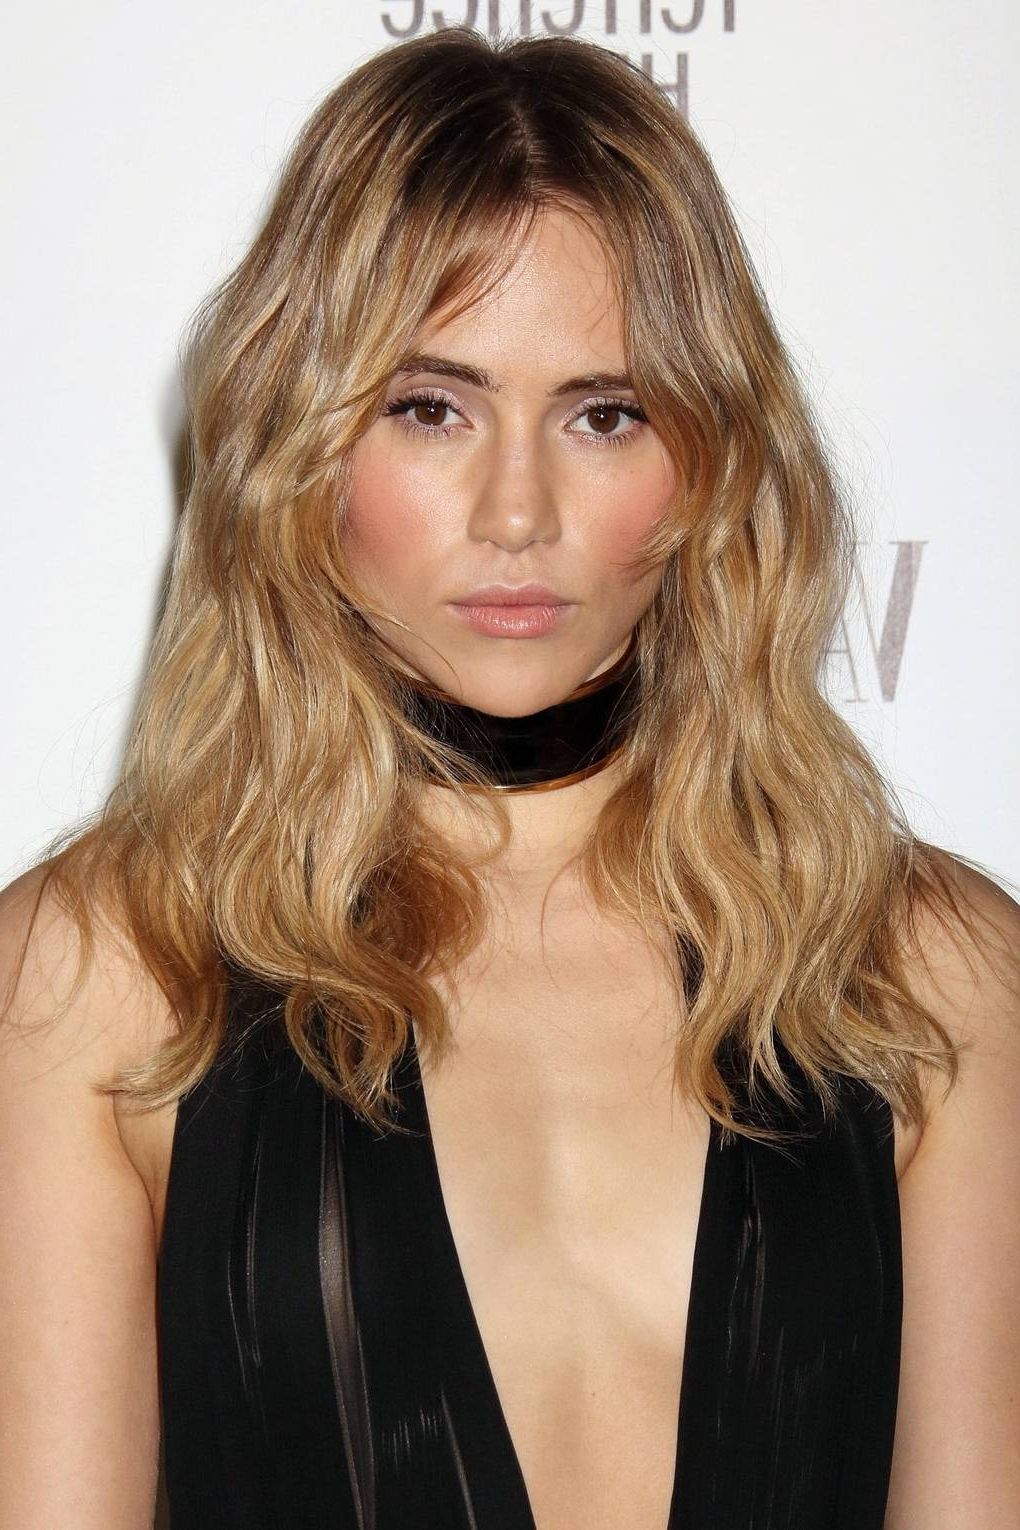 Well Known Voluminous And Carefree Loose Look Blonde Hairstyles With Celebrity Hairstyle Ideas & Pictures 2015; Bobs, Short Hair Cuts (View 20 of 20)